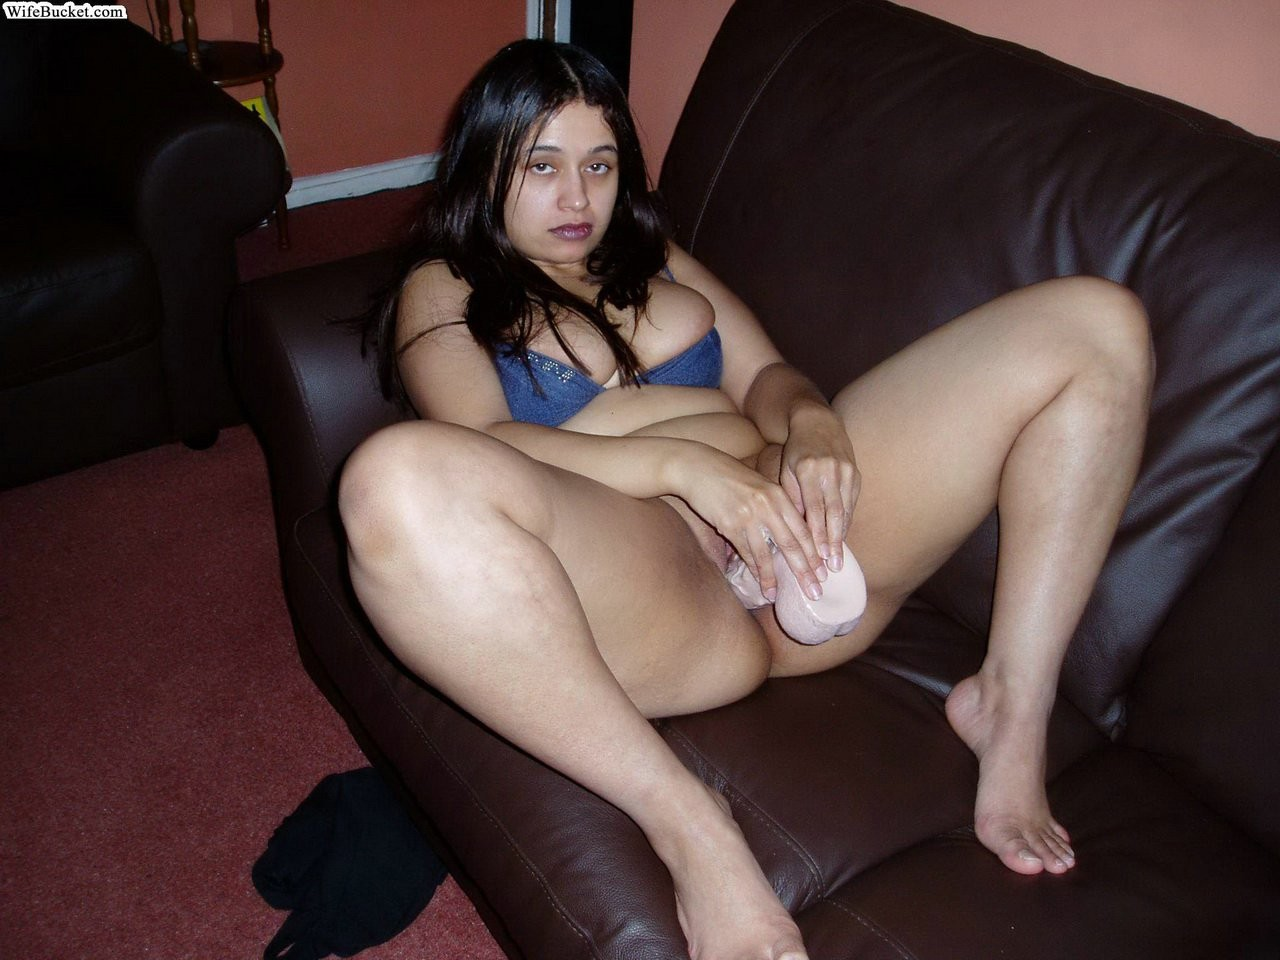 Mature Amature Submitted Galleries